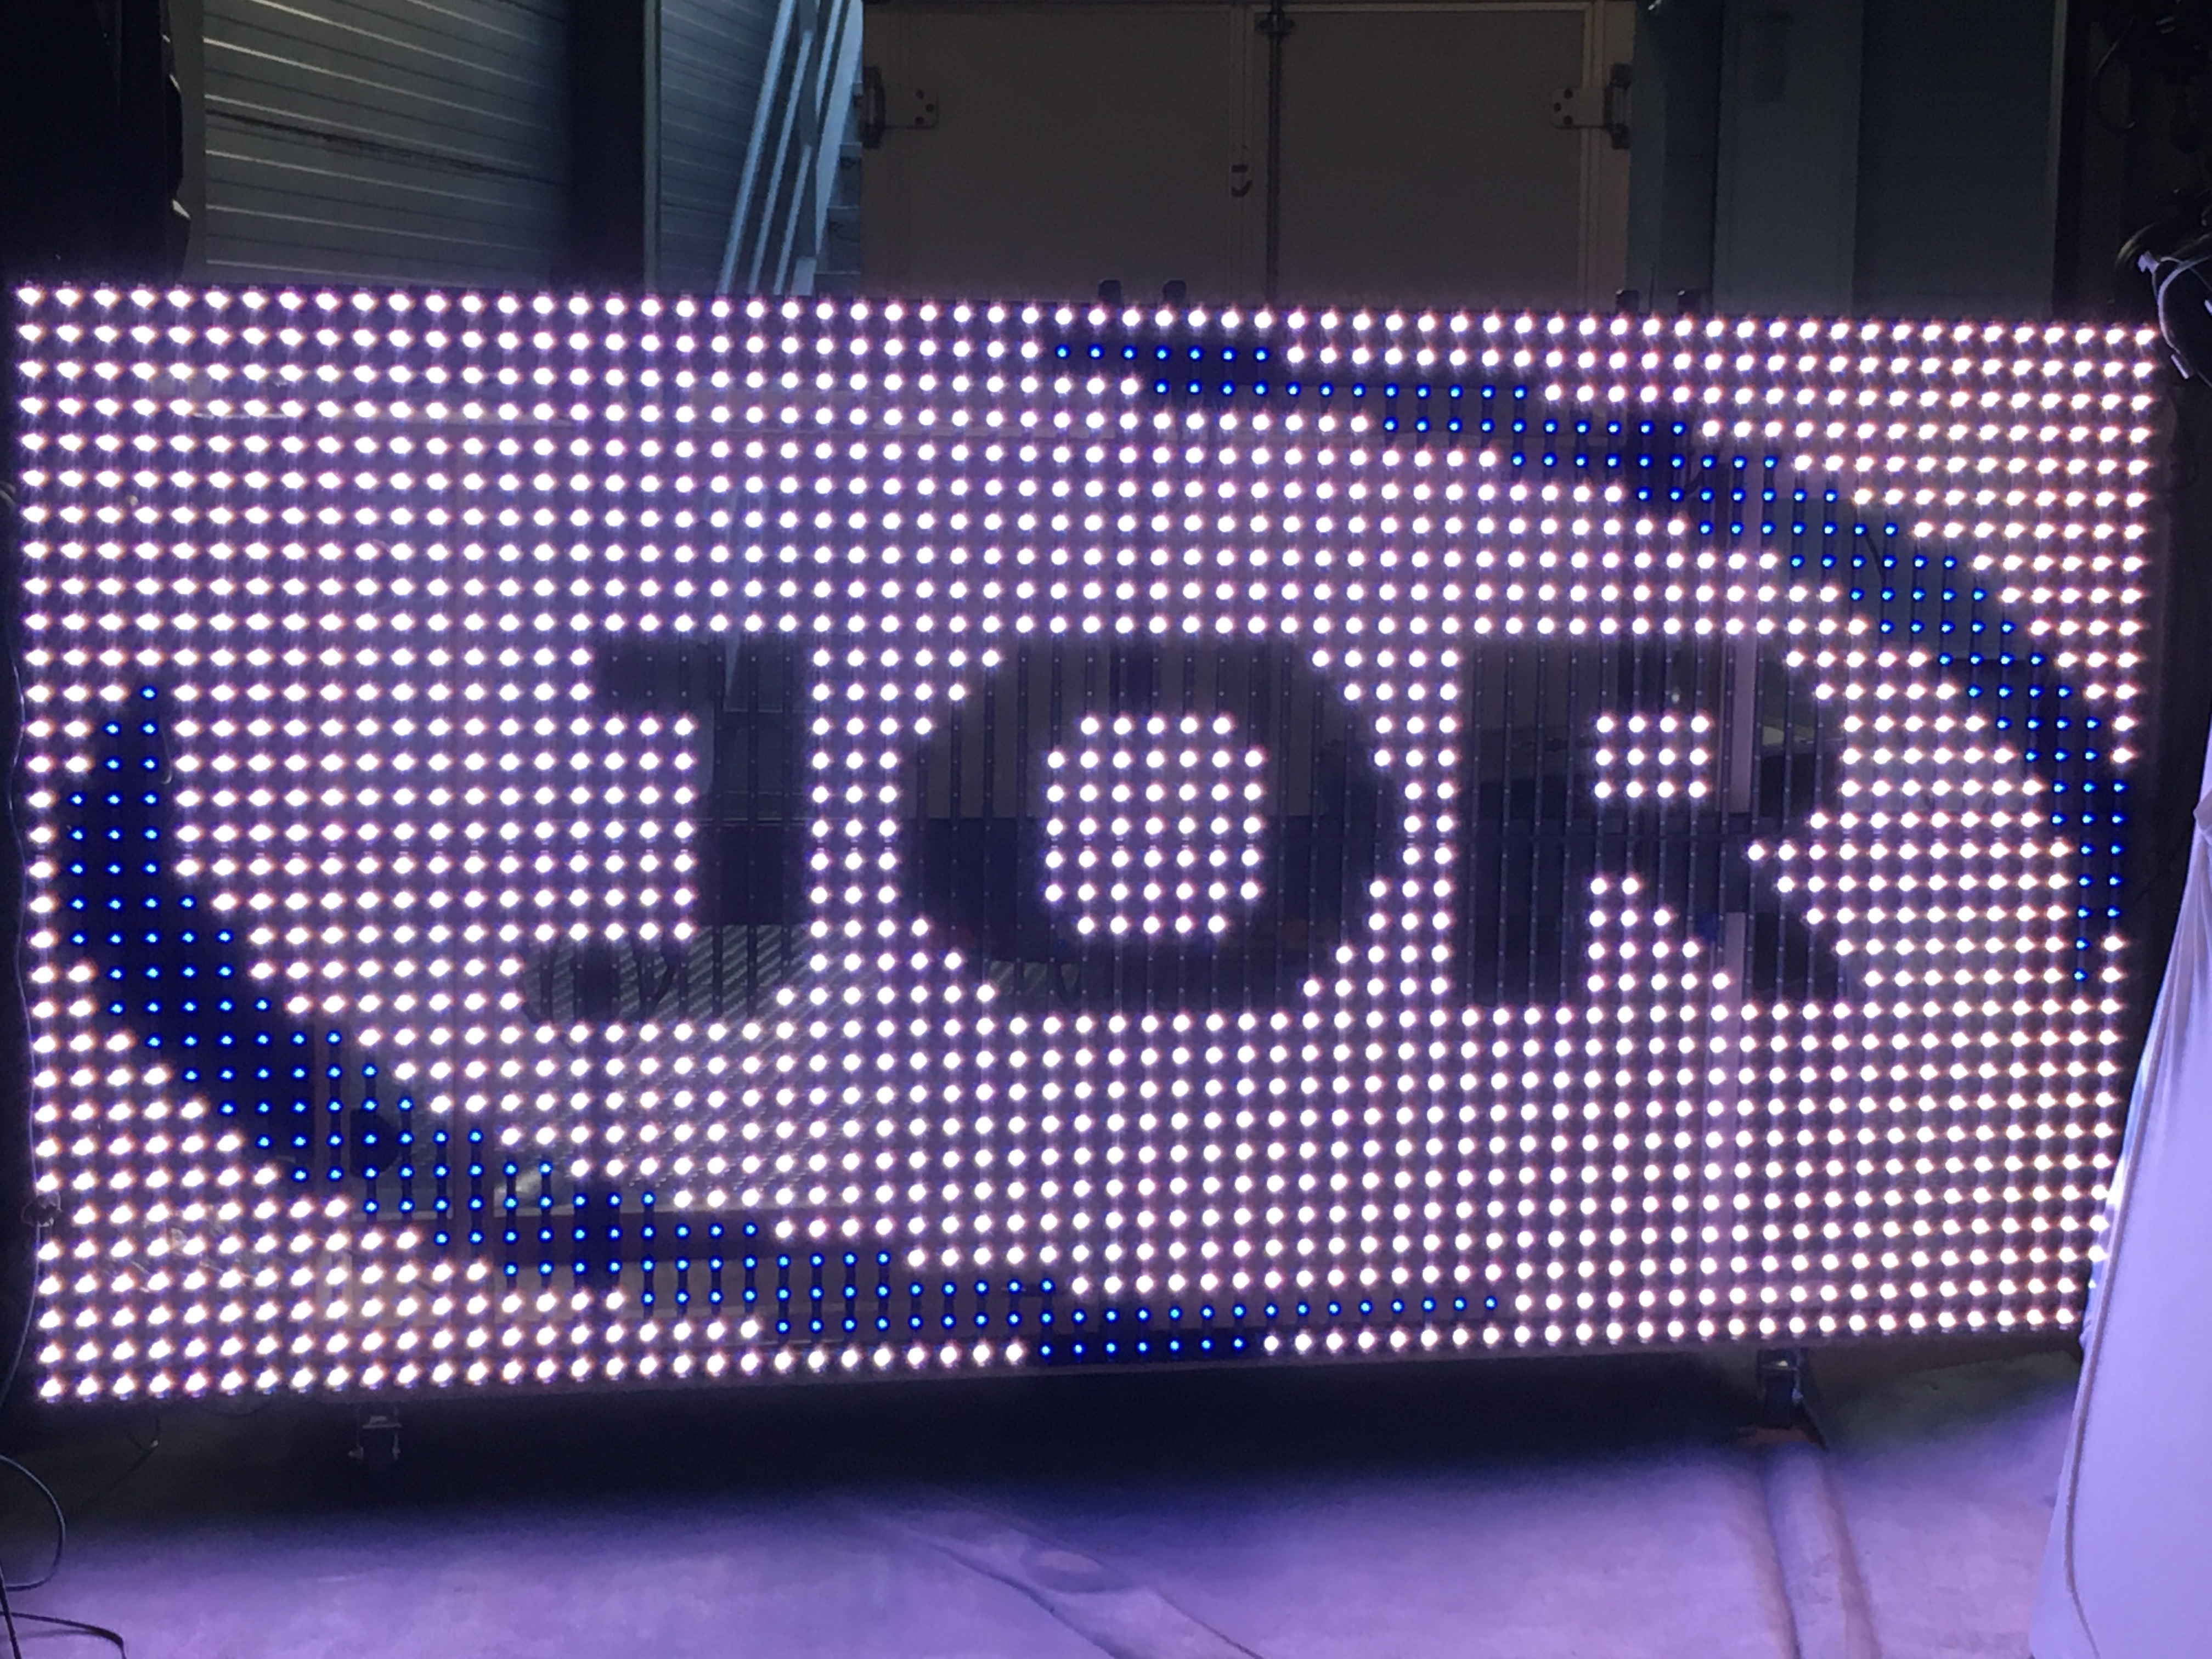 DJ Booth LED pixel